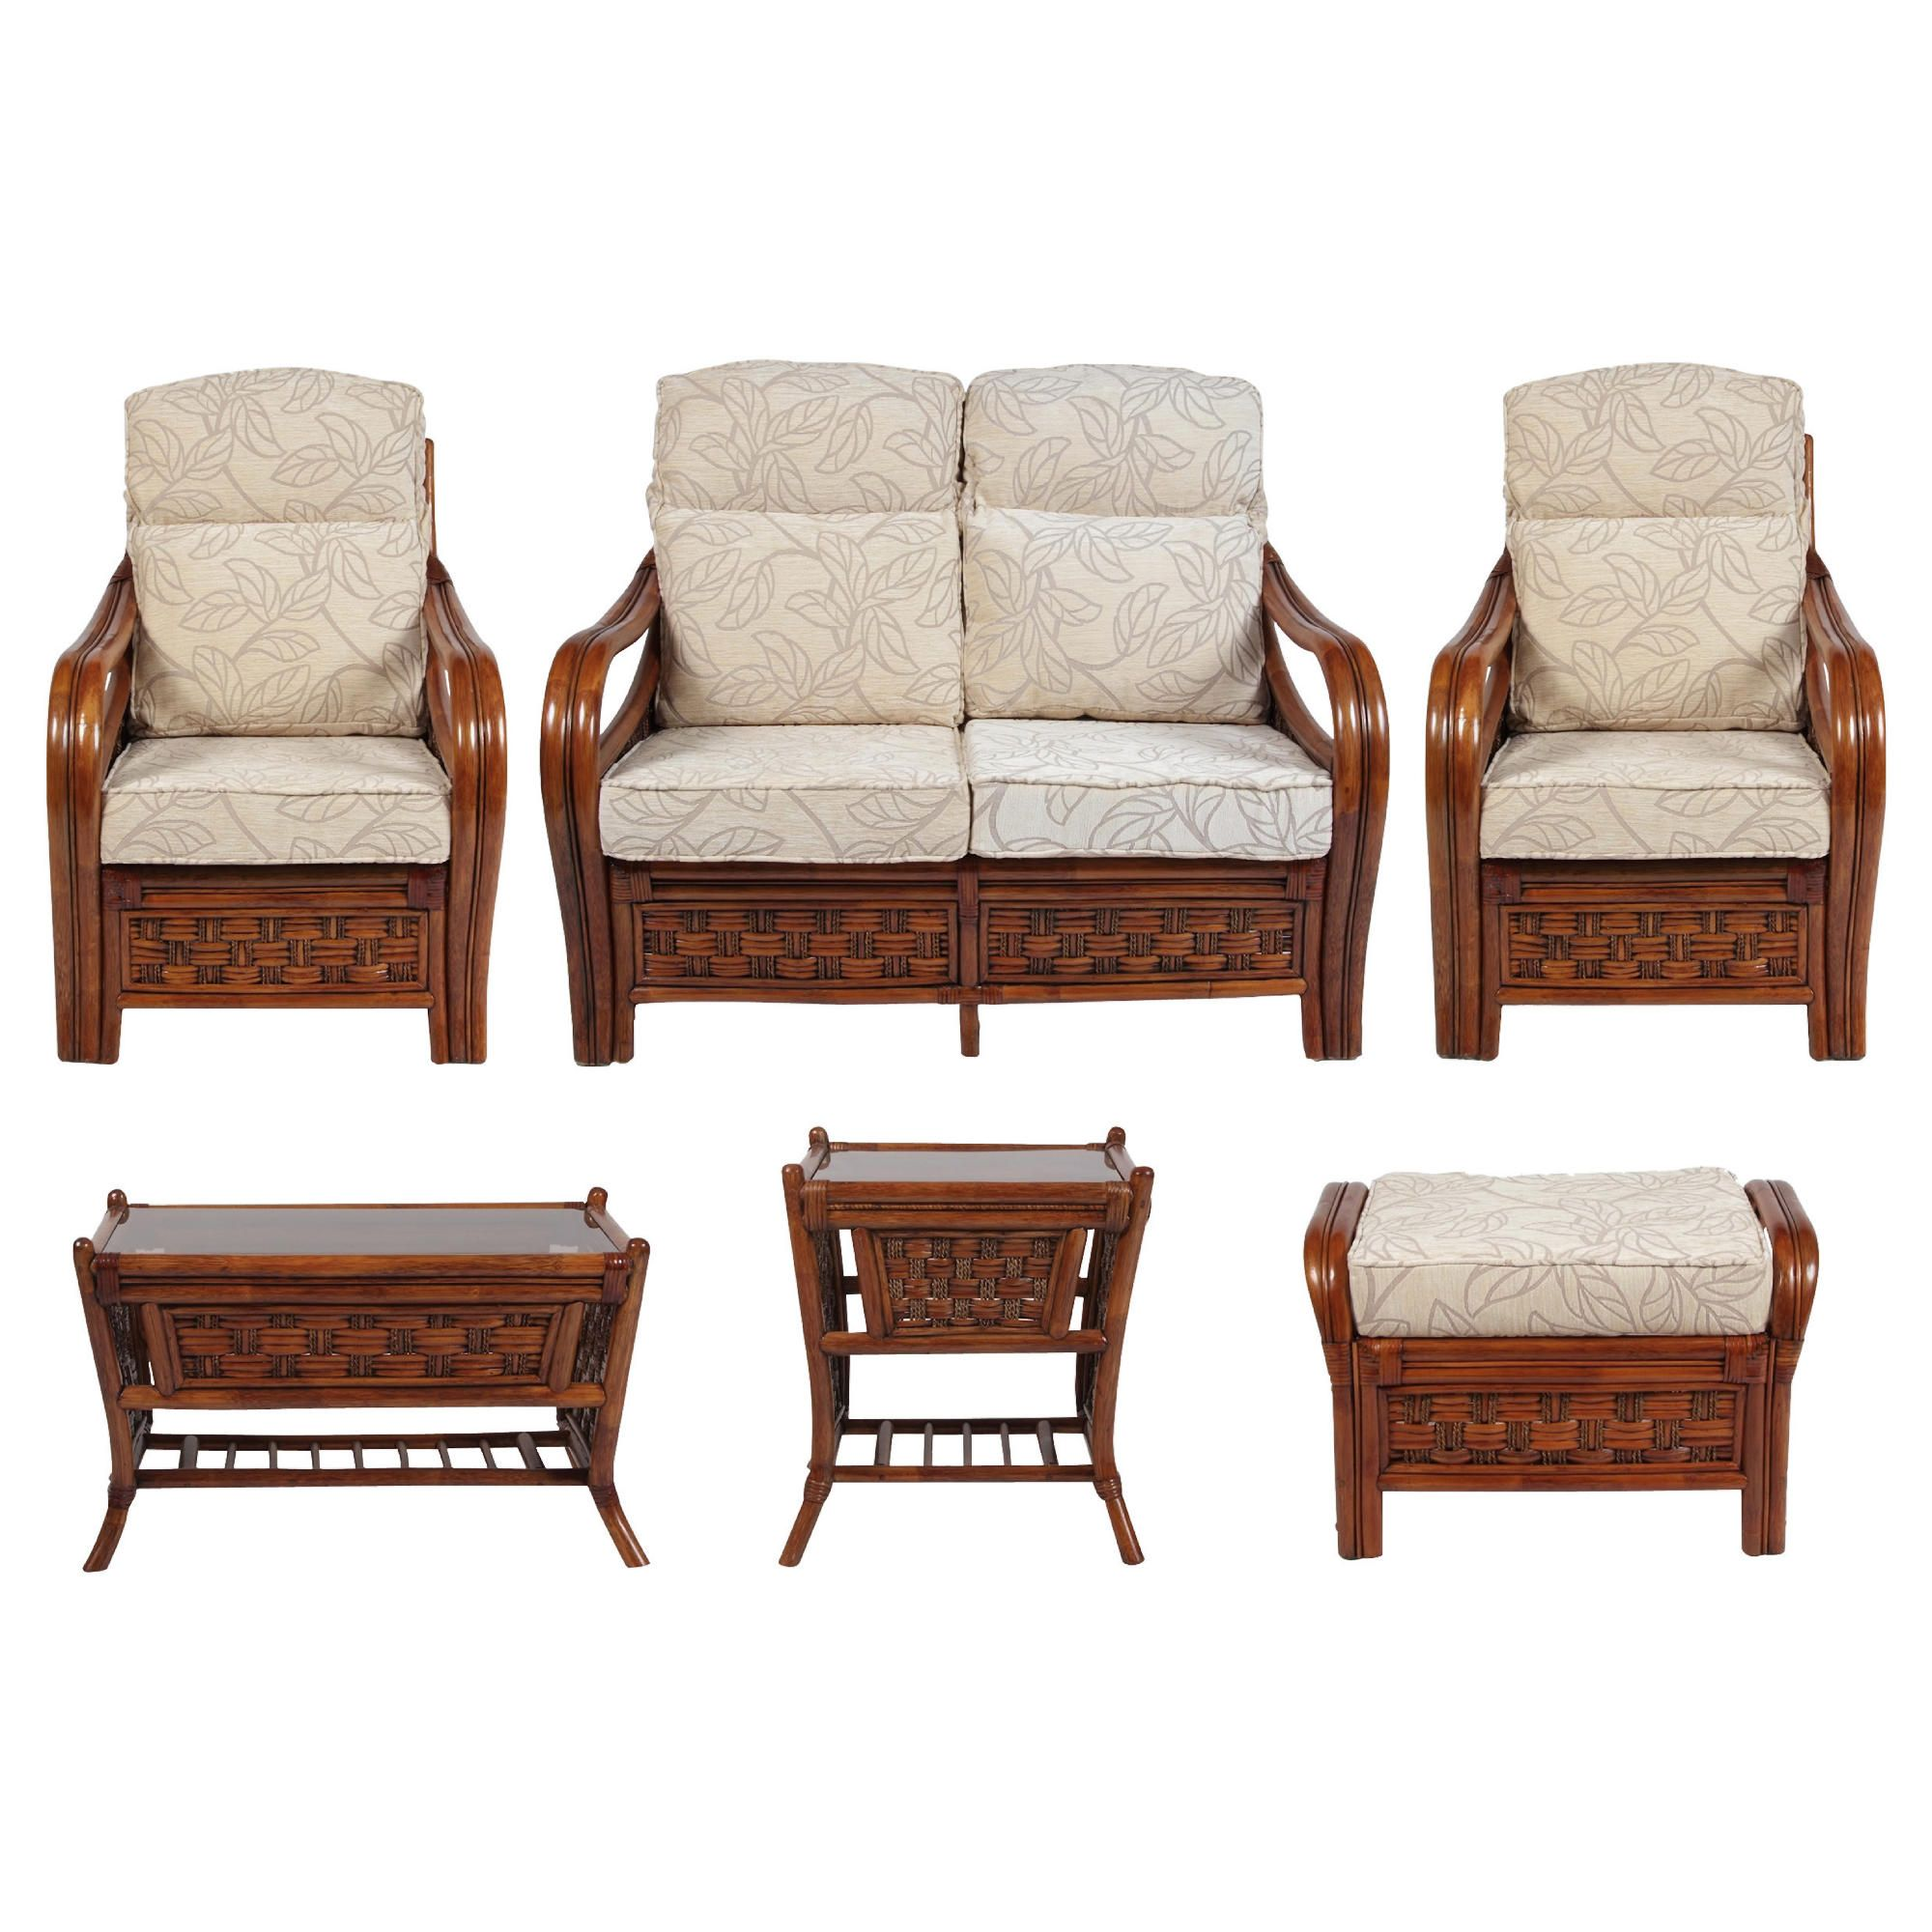 Santiago 6 Piece Suite Conservatory Set (sofa, 2 x chairs, Coffee table, Lamp table & Footstool) at Tesco Direct